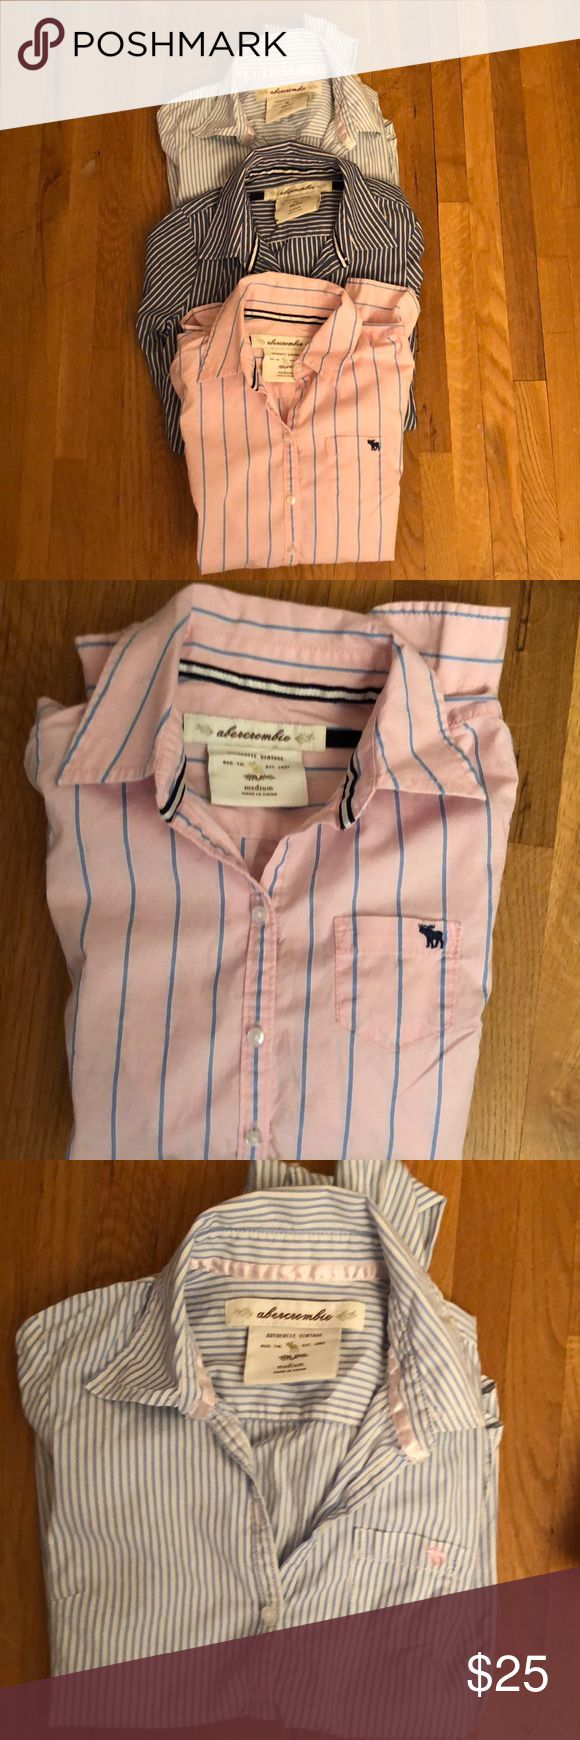 Three Abercrombie Girls' Button-down Shirts Medium Bundle of three classic Abercrombie girls' shirts in size medium. All with classic moose on pocket on front. One is blue and white stripes. One is pink with blue stripes. One is pink and blue stripes. Shirts are in very good condition. Abercombie Kids Shirts & Tops Button Down Shirts